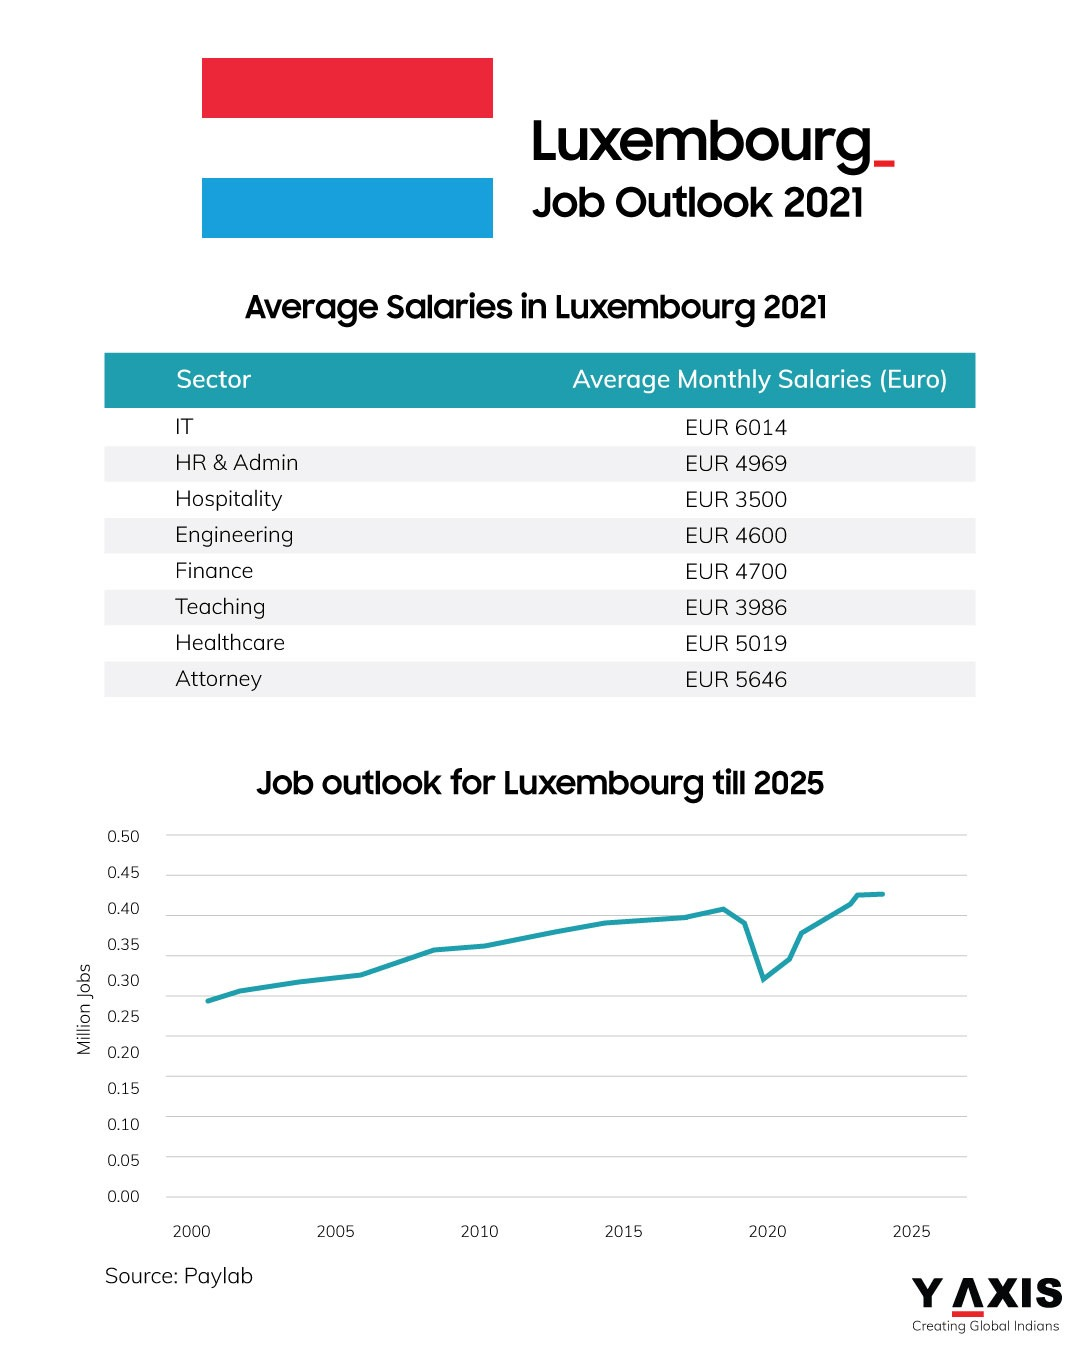 Jobs outlook in Luxembourg for 2021